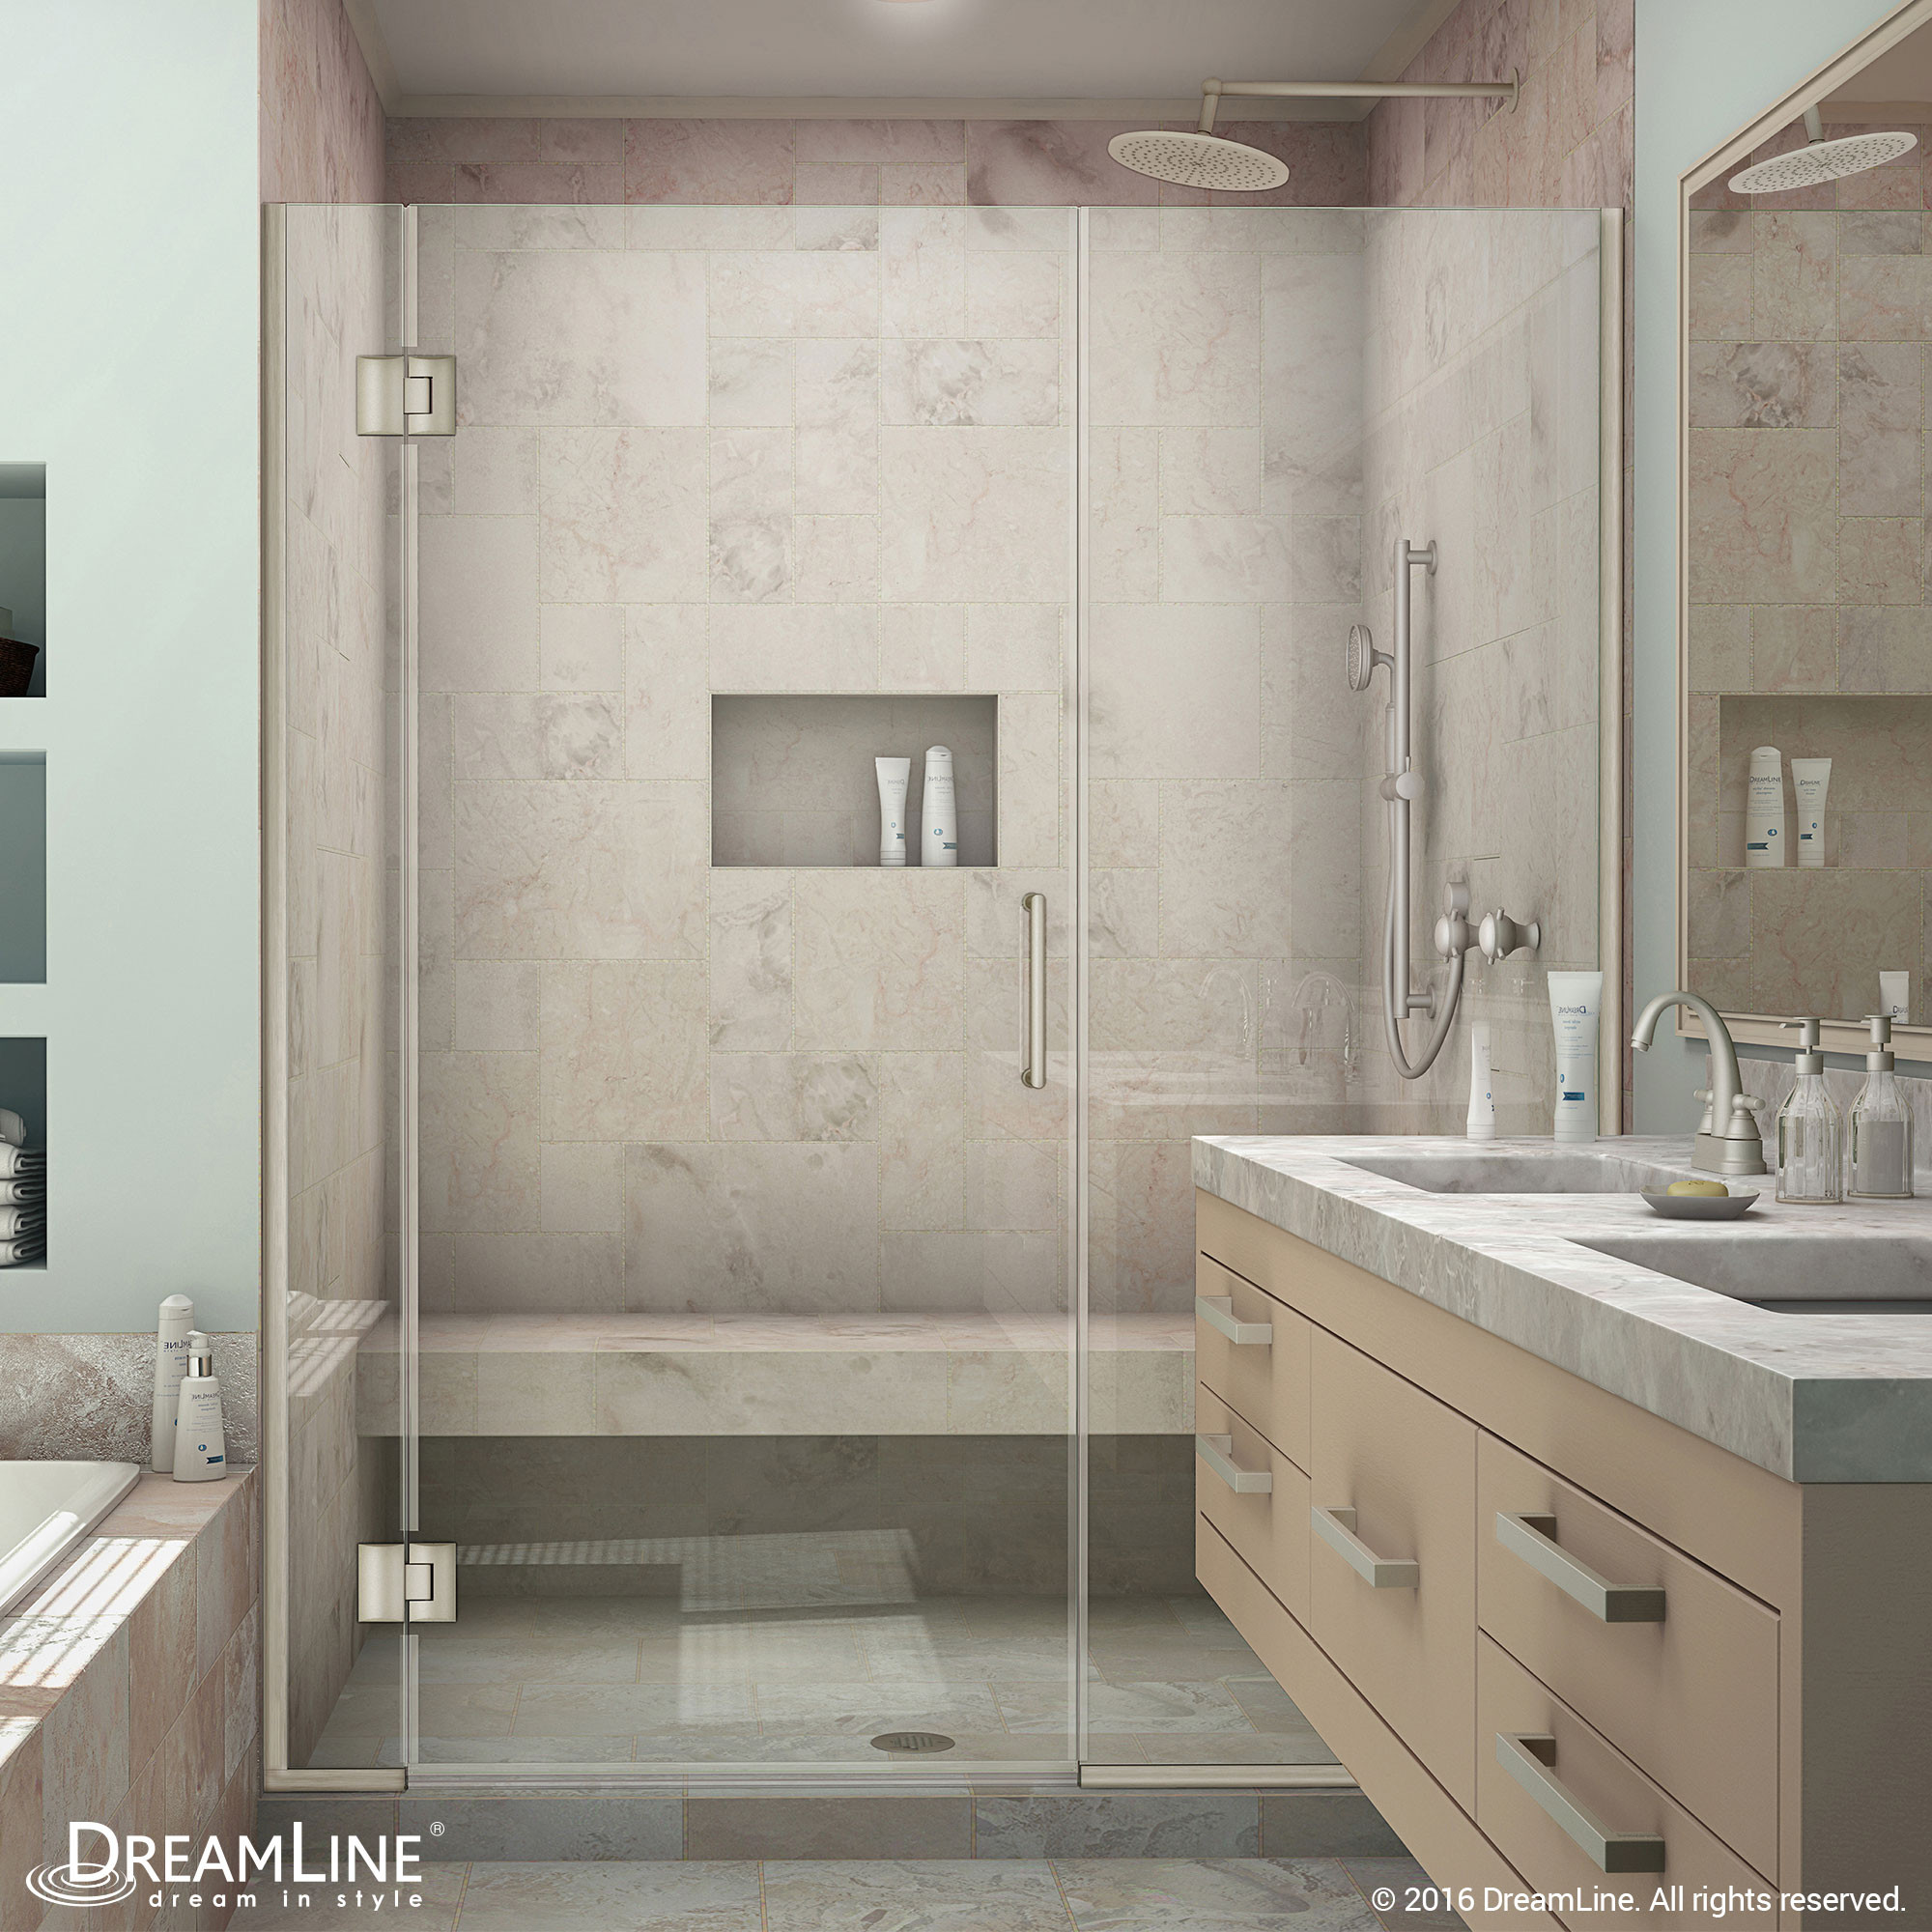 DreamLine D12914572-04 Brushed Nickel Unidoor-X 49 1/2 - 50 in. W x 72 in. H Hinged Shower Door